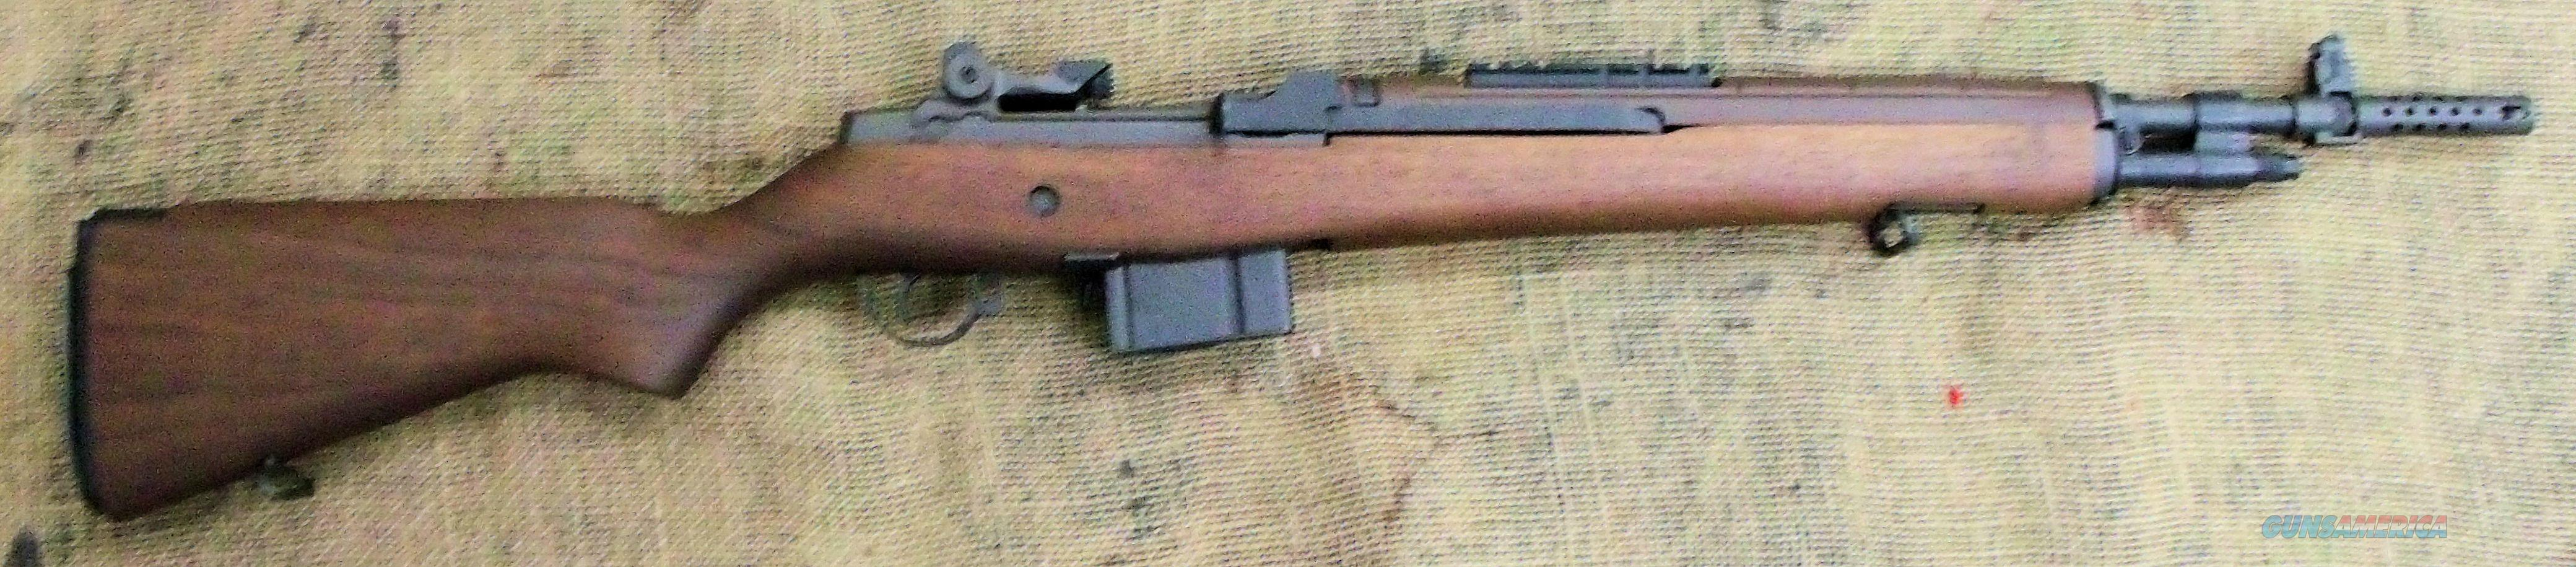 SPRINGFIELD ARMORY M1A SCOUT Semi-Auto Rifle in 7.62 NATO  Guns > Rifles > Springfield Armory Rifles > M1A/M14